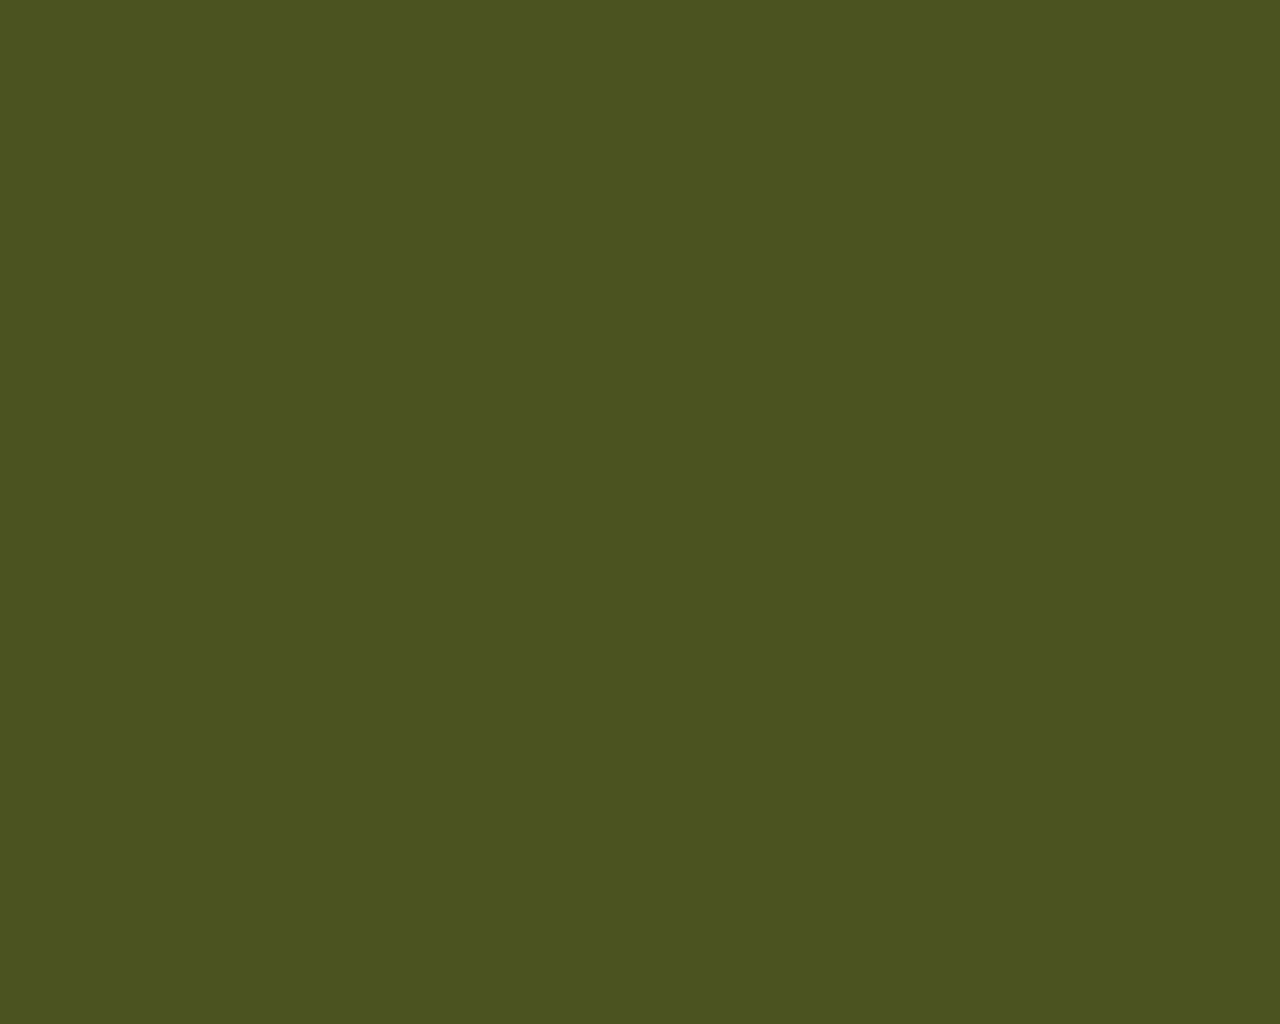 1280x1024 Army Green Solid Color Background